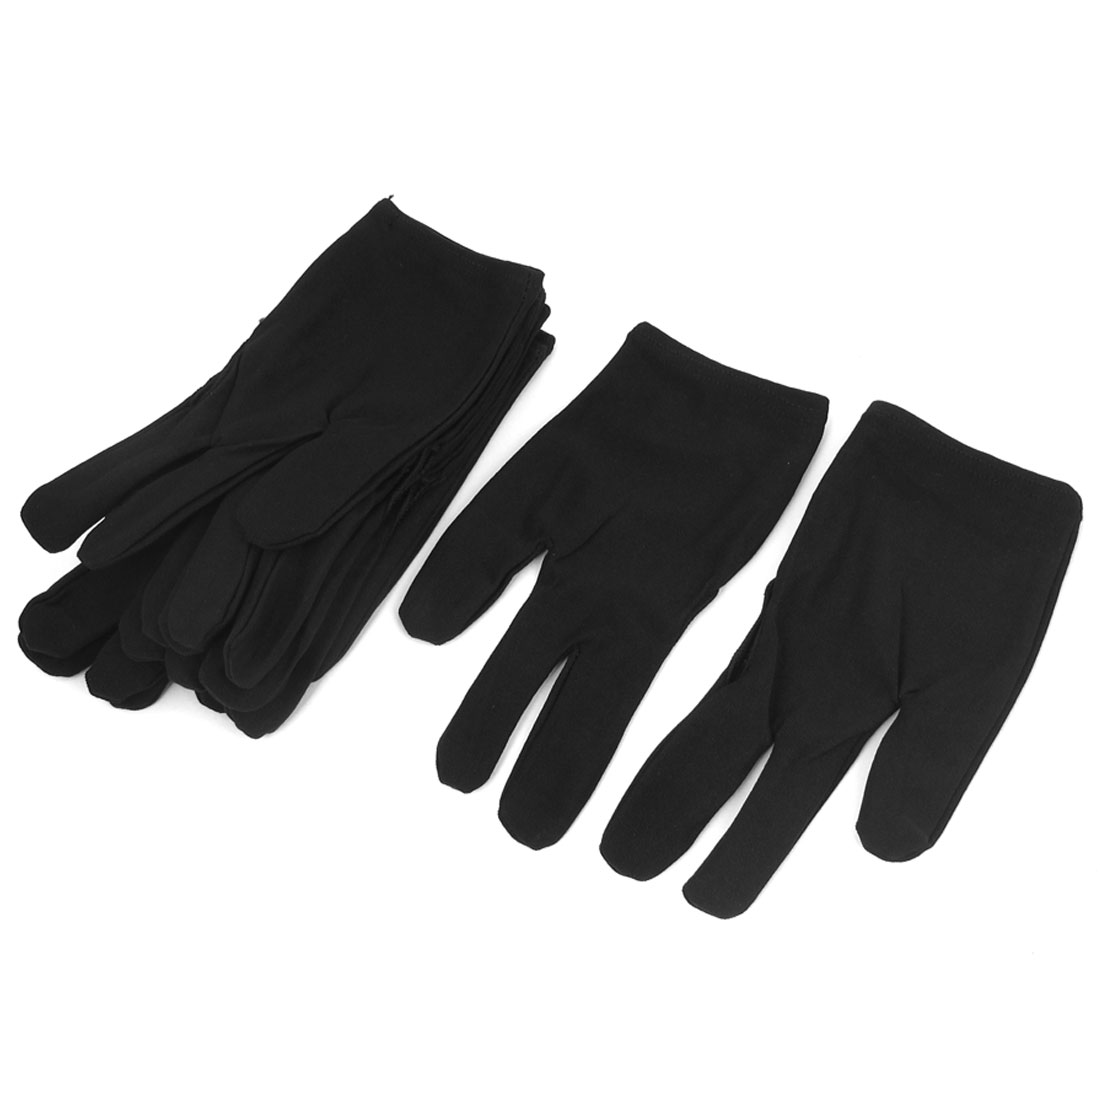 6 Pairs Black Nylon Elastic Shooter Billiard 3 Fingers Gloves for Pool Cue Stick